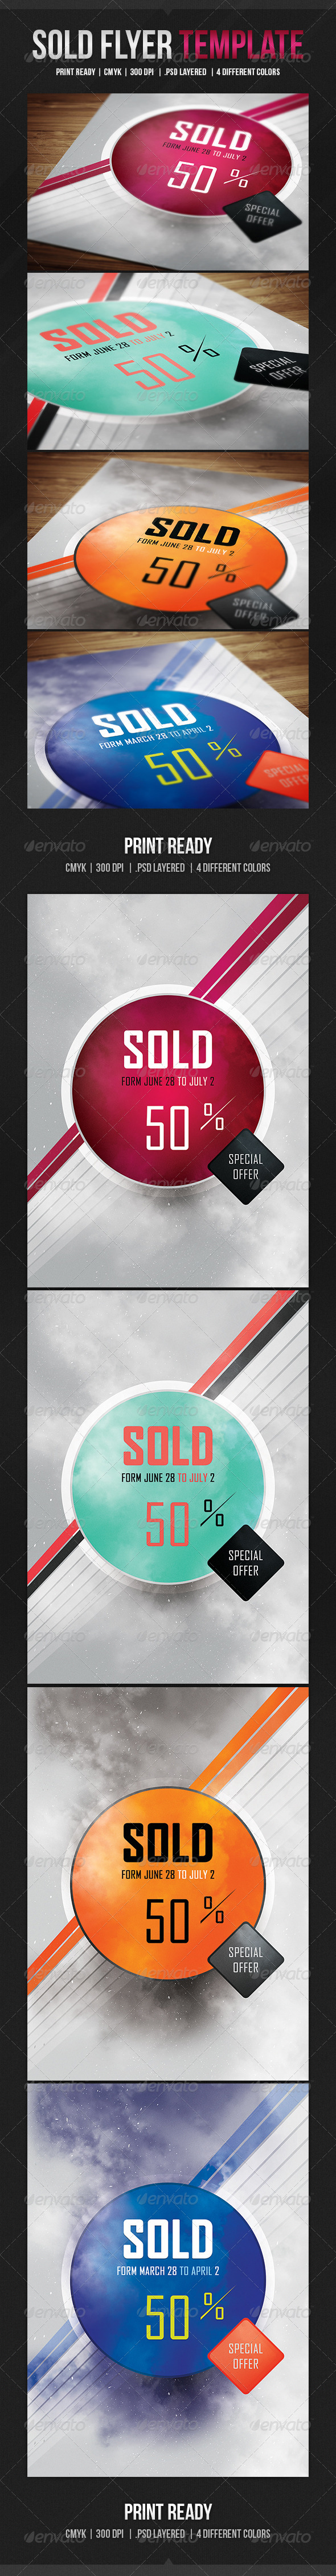 GraphicRiver Sold Flyer Template 4931452